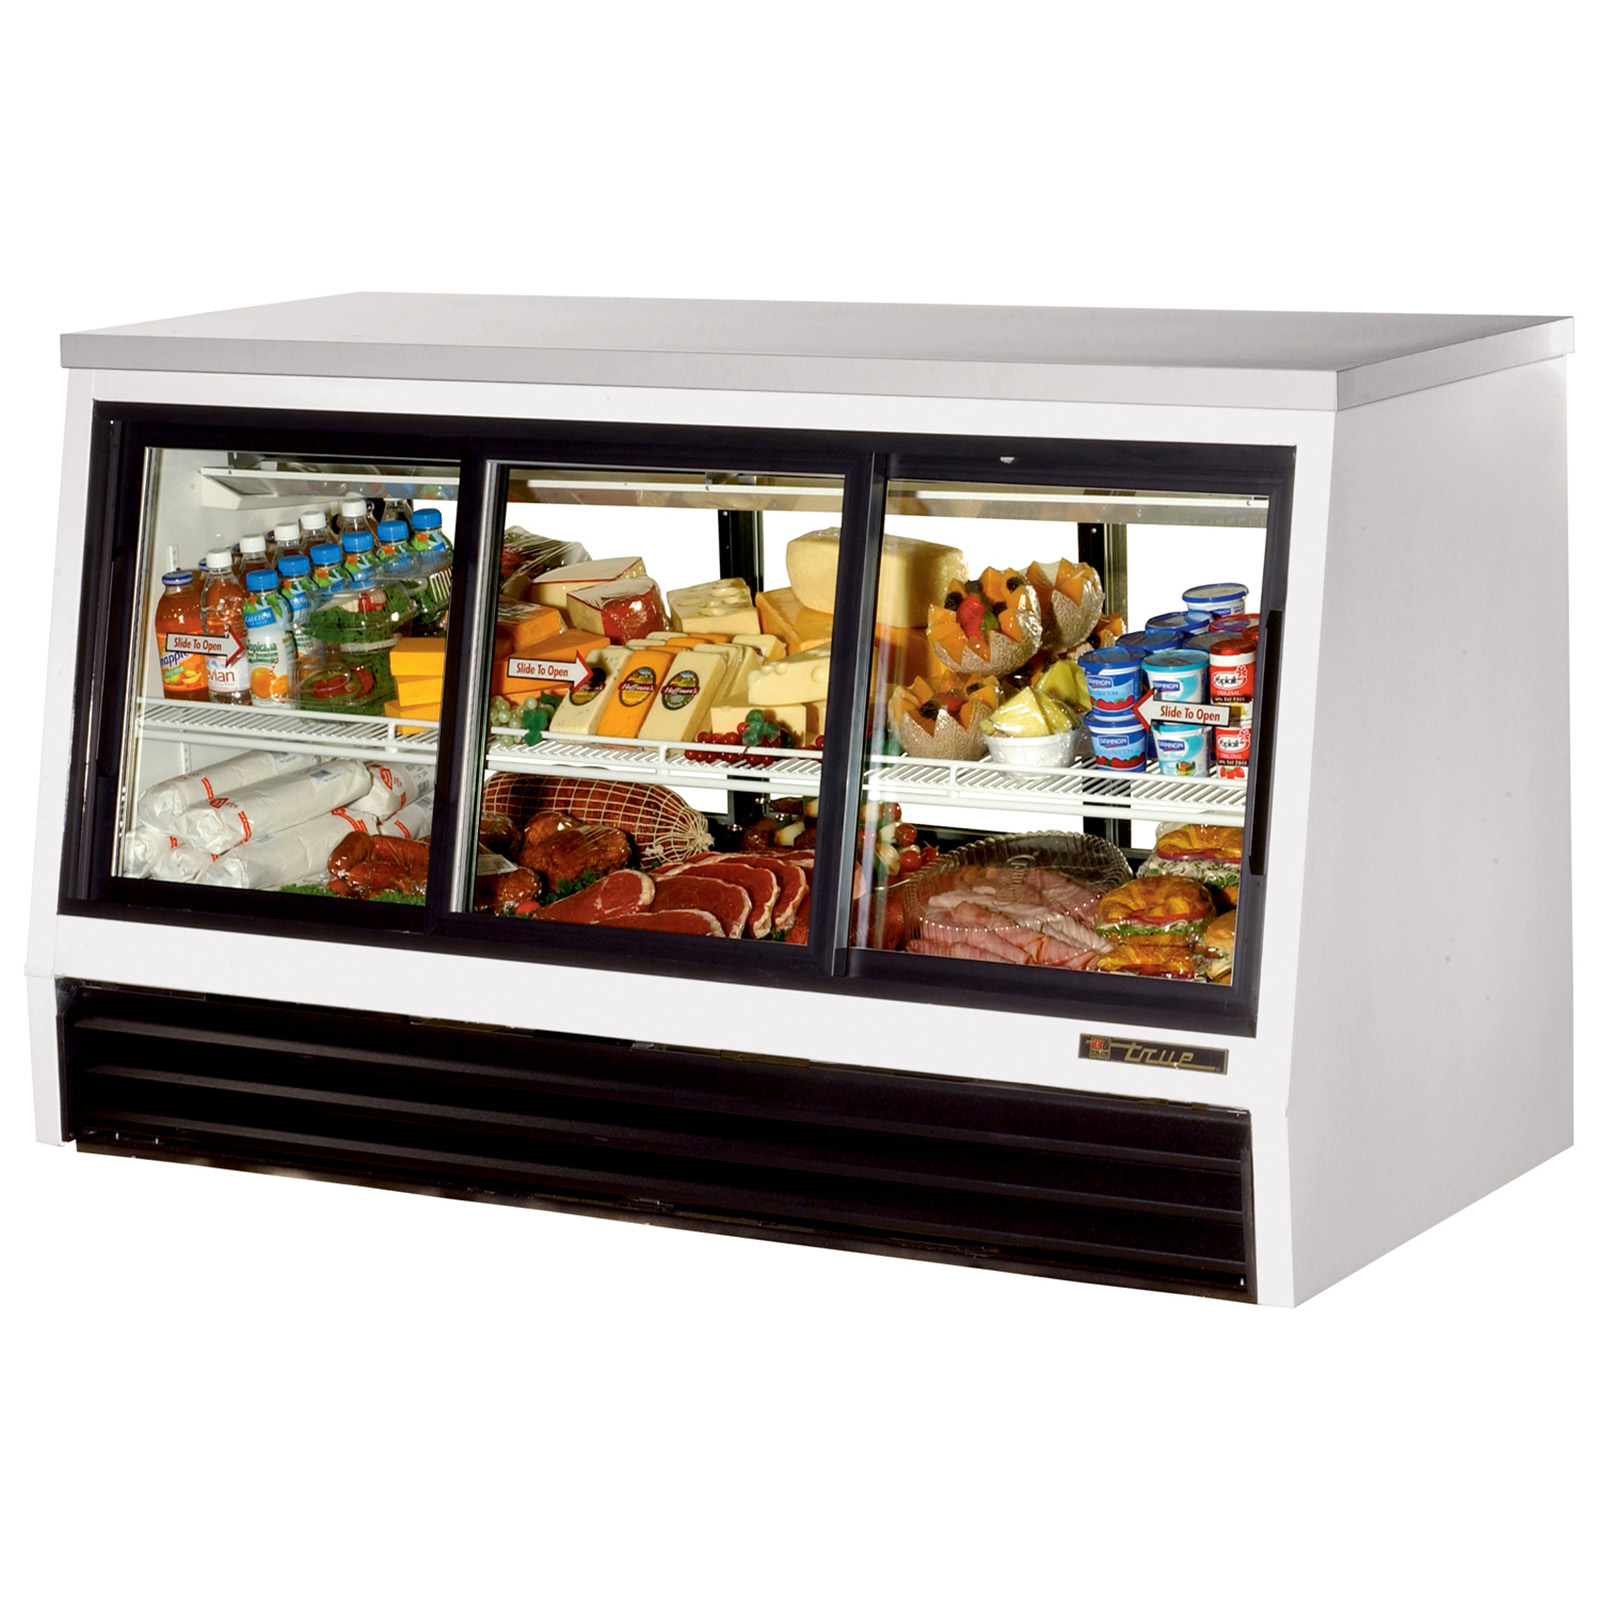 TSID-72-6-L True - Low-Height Deli Case Pass-thru